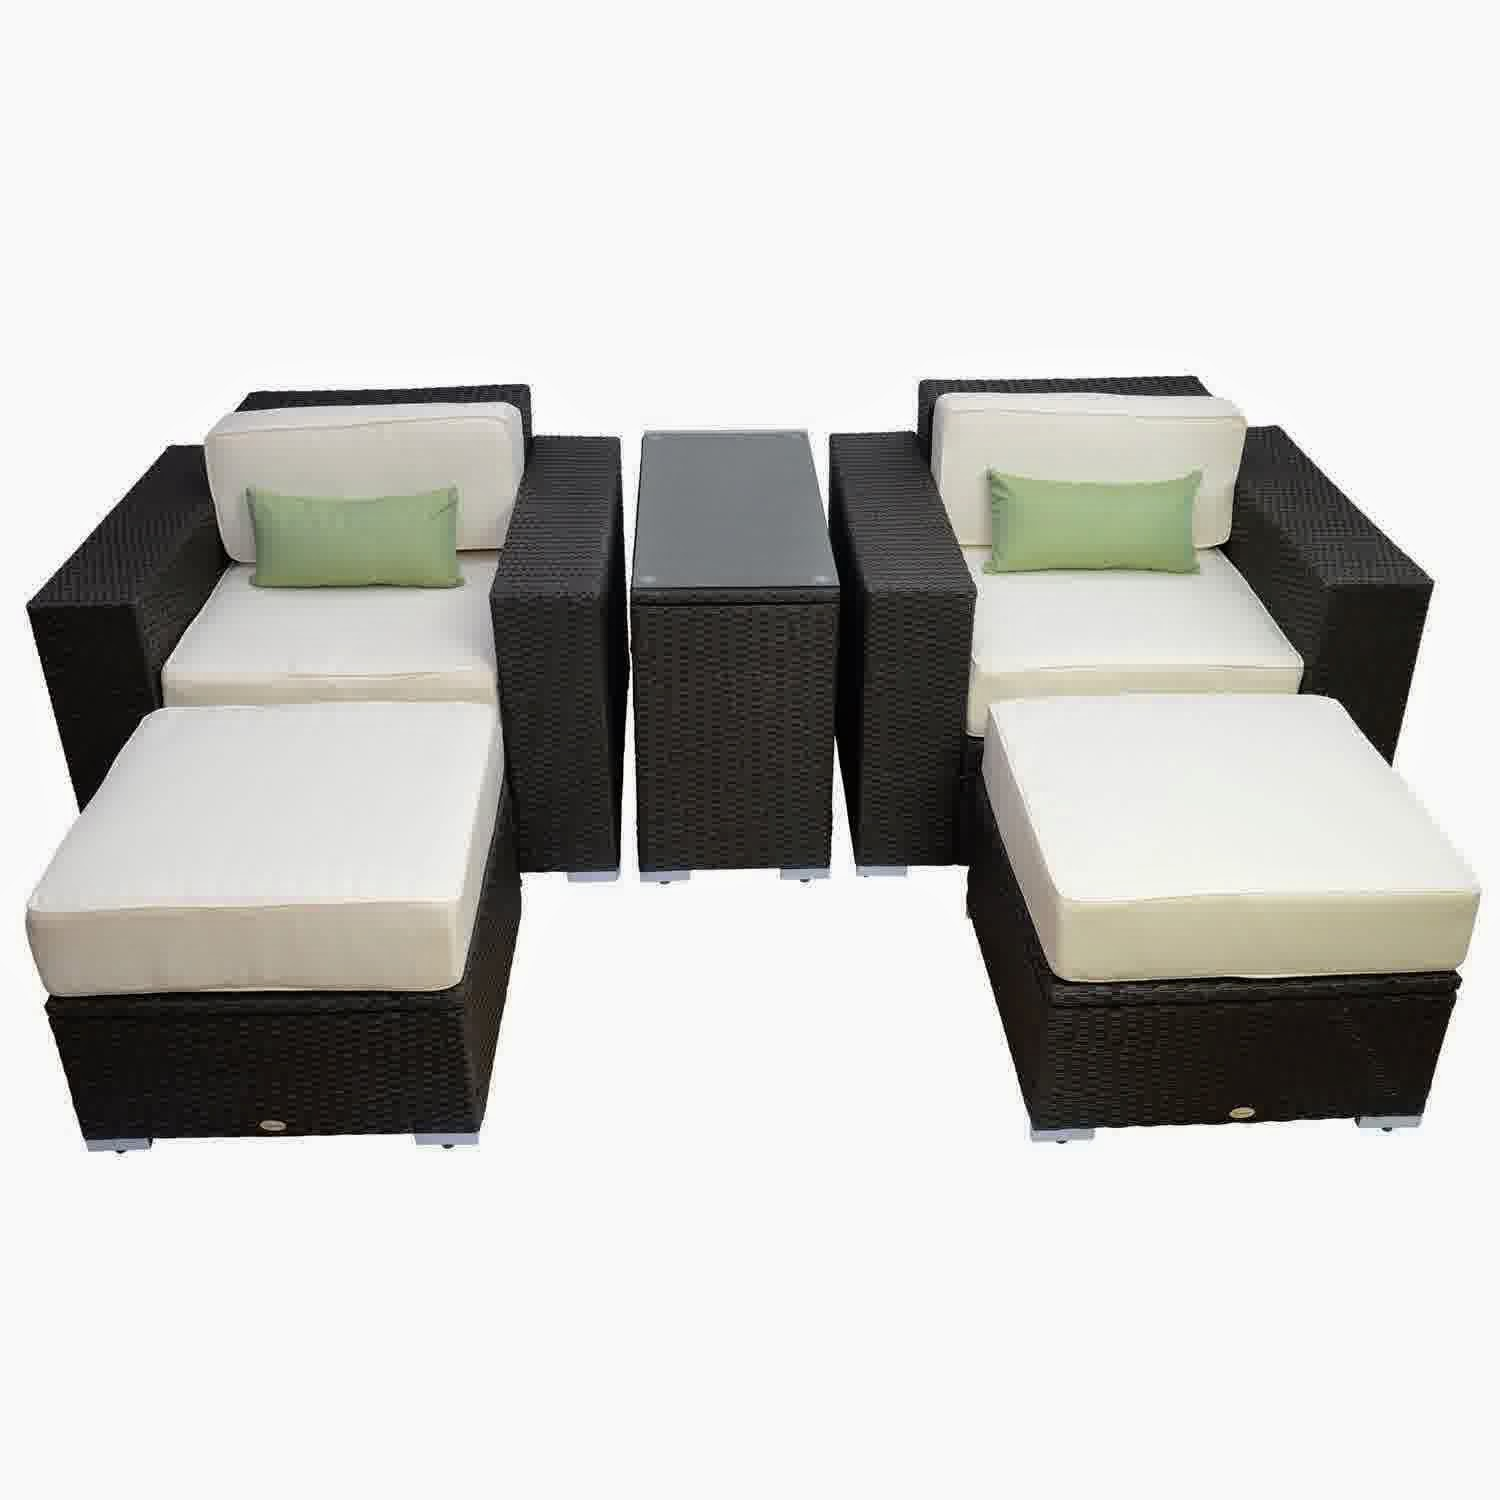 Outsunny Outdoor PE Rattan Wicker Lounge Chair Patio Furniture Set